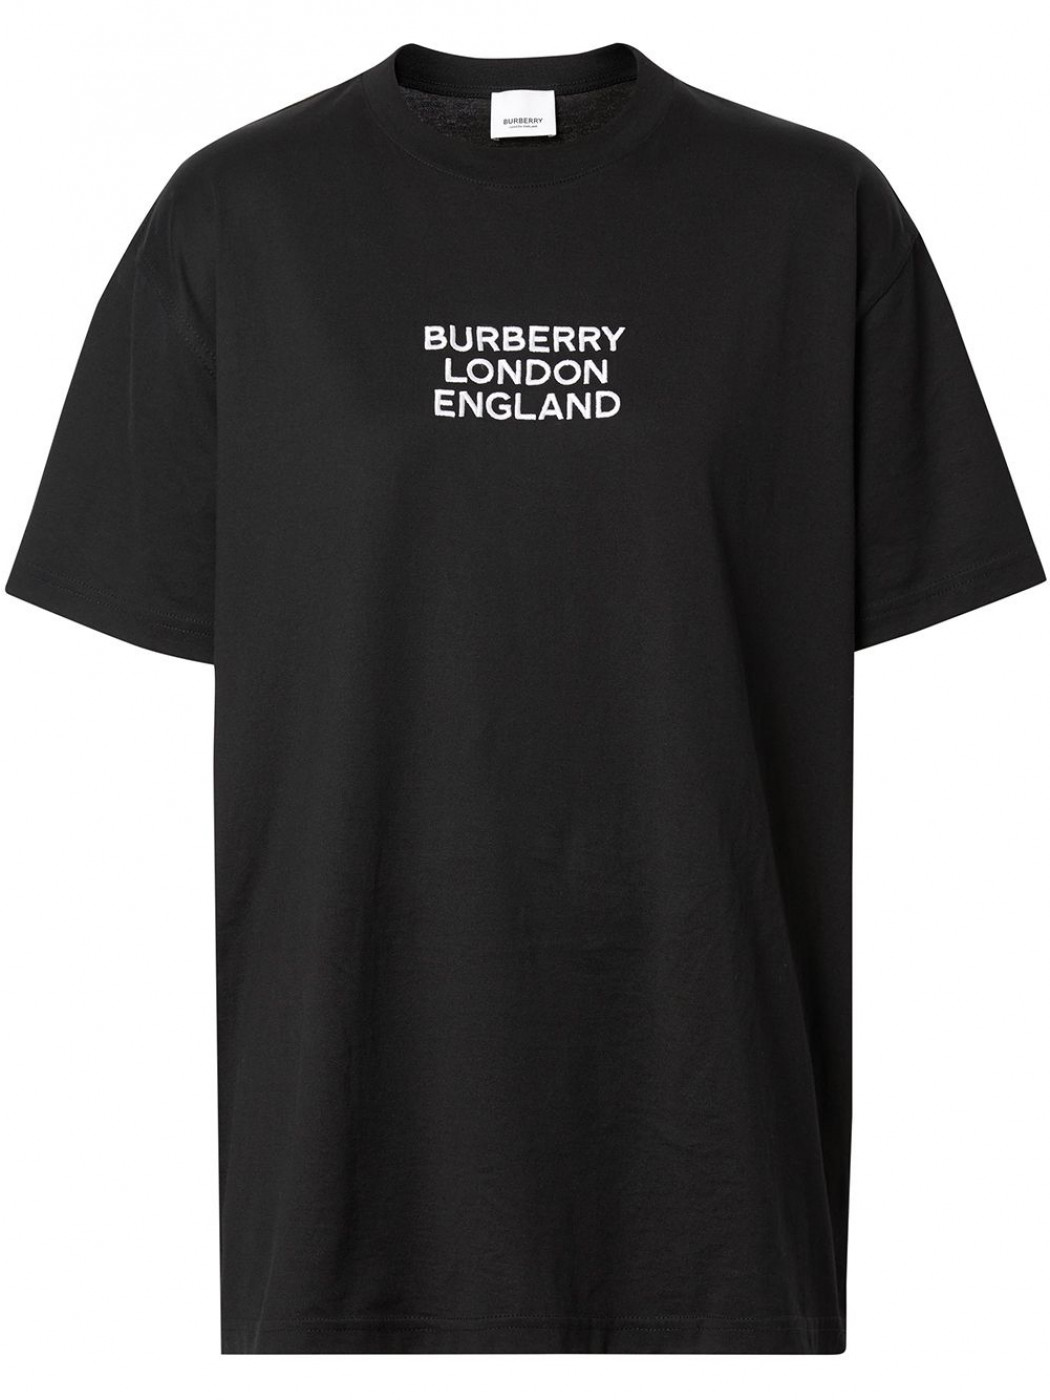 black cotton t.shirt with front logo lettering Burberry London England BURBERRY |  | 8021175-CARRICKA1189